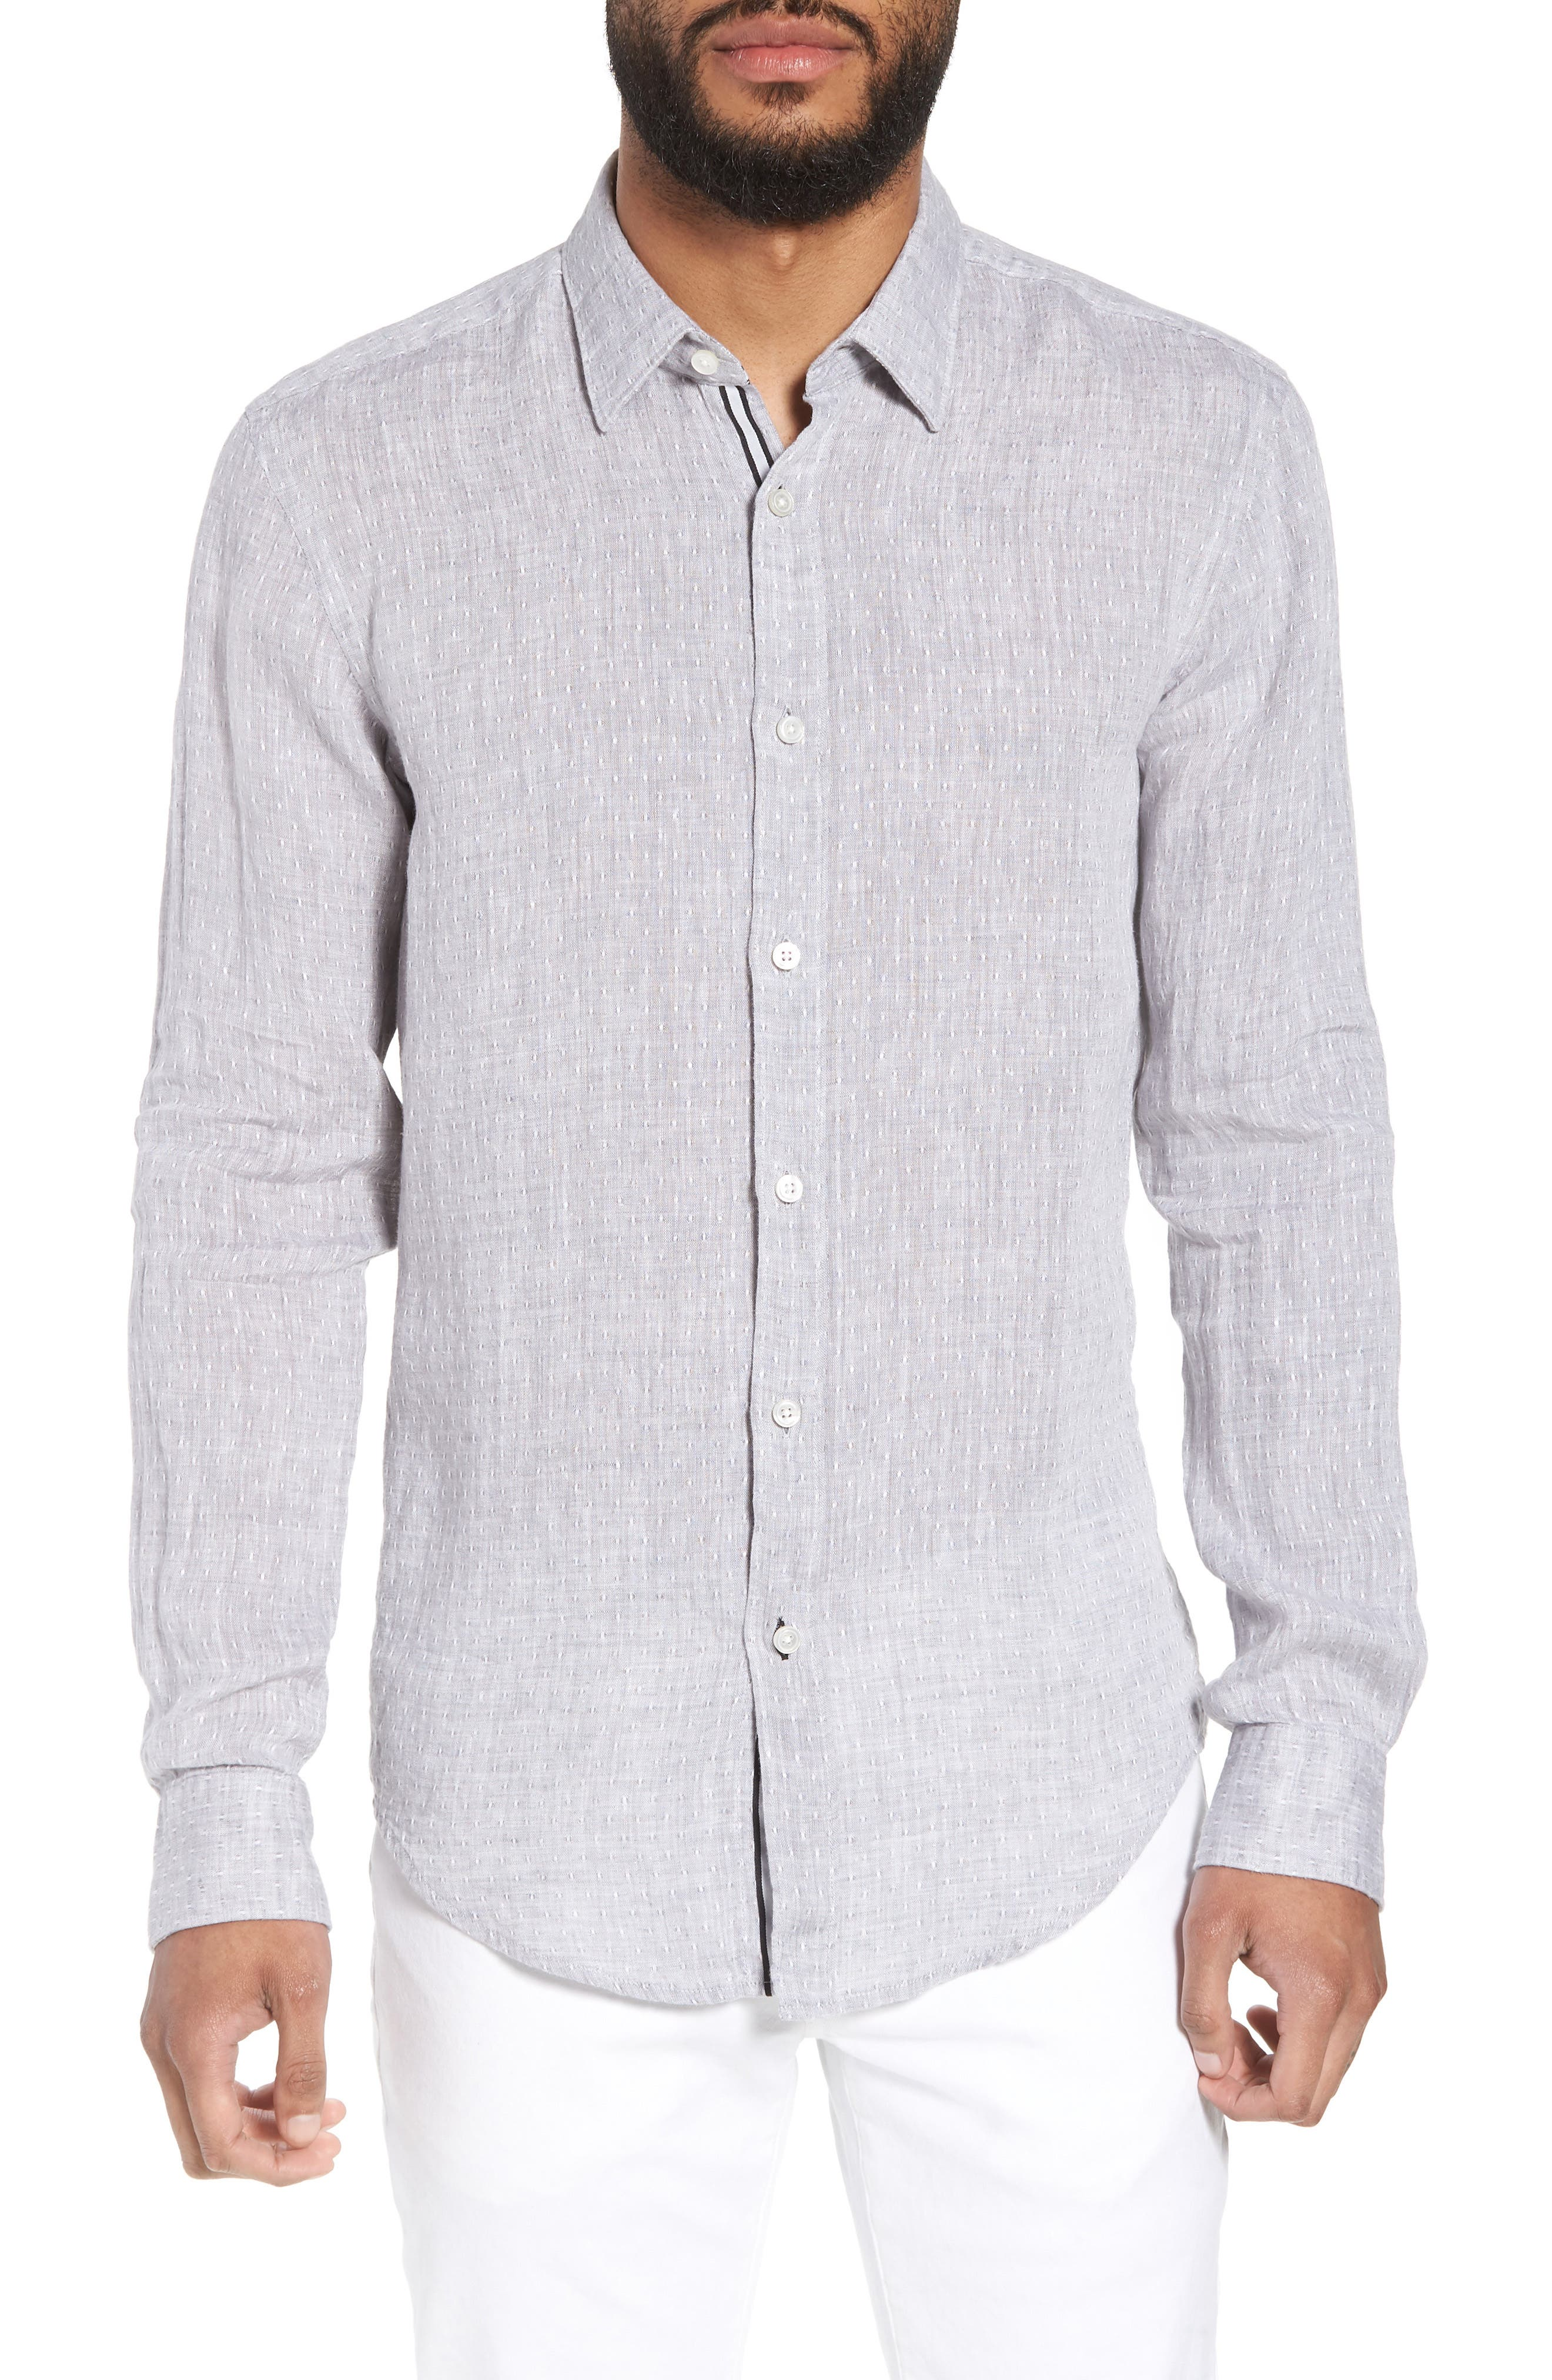 Ronni Slim Fit Dobby Linen Sport Shirt,                         Main,                         color, 071